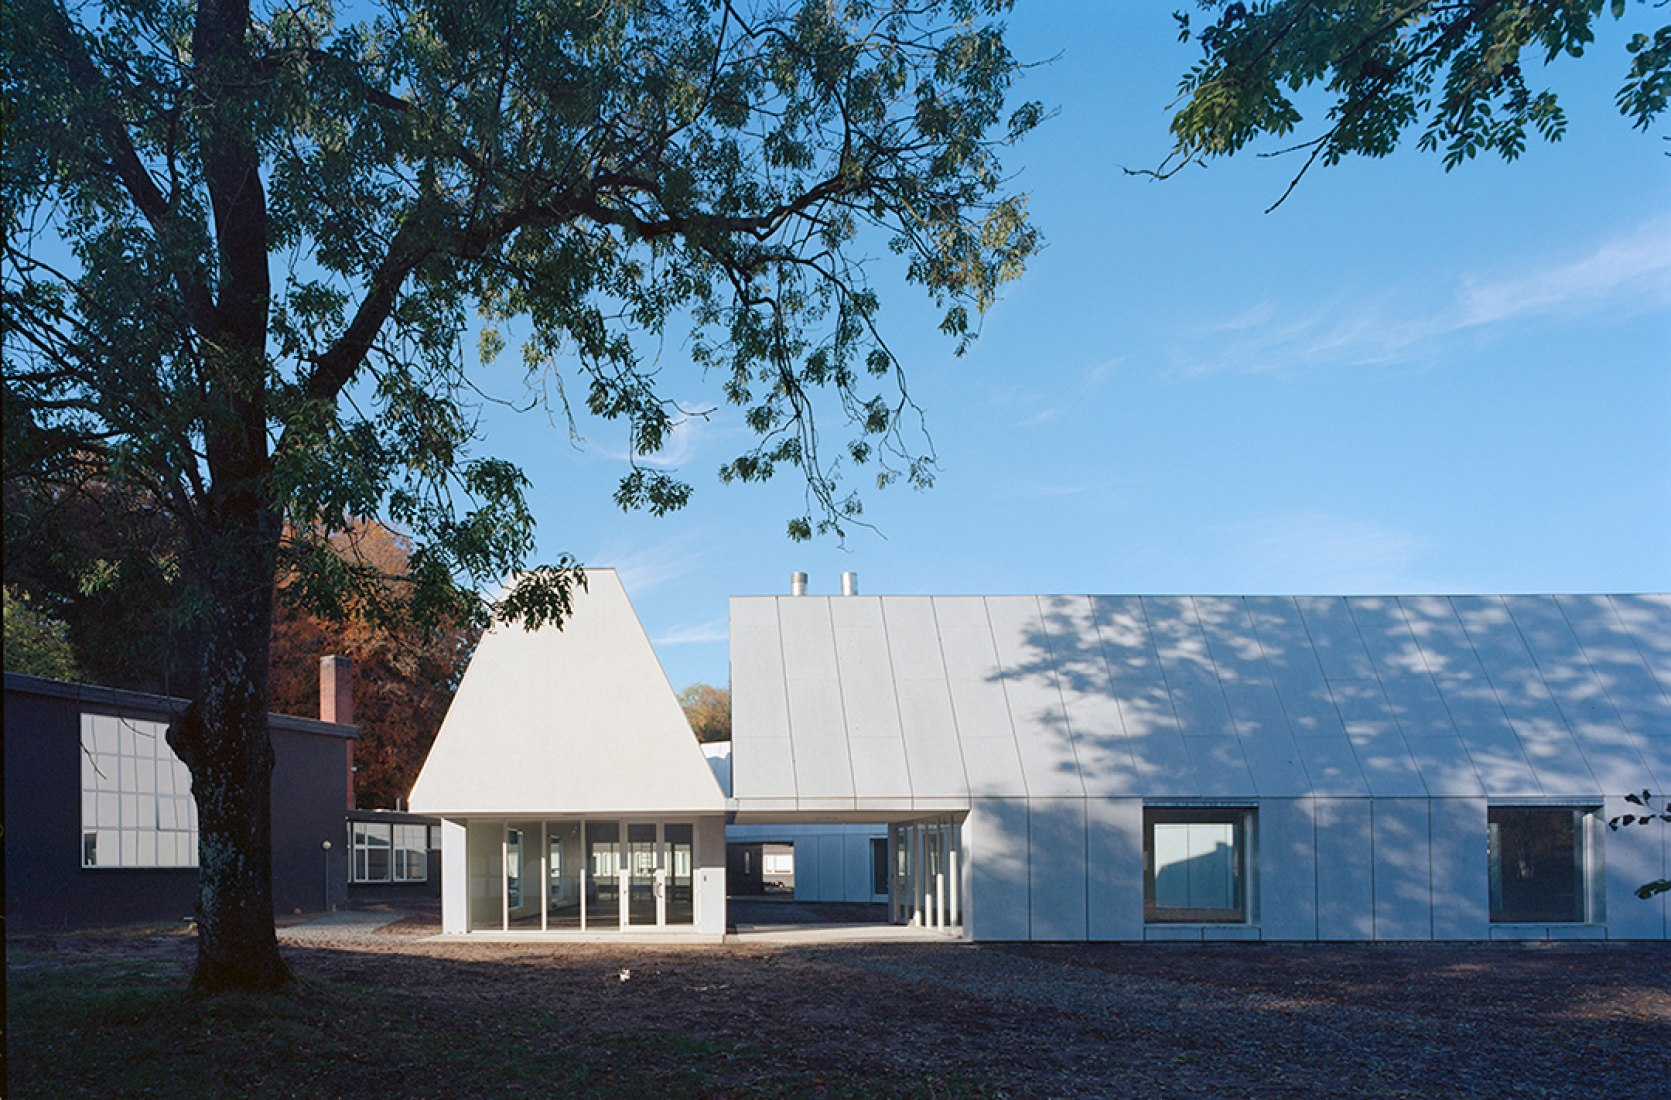 Exterior view of School No.1 by MOS Architects. Photography © MOS, Florian Holzherr, Per Andersen.